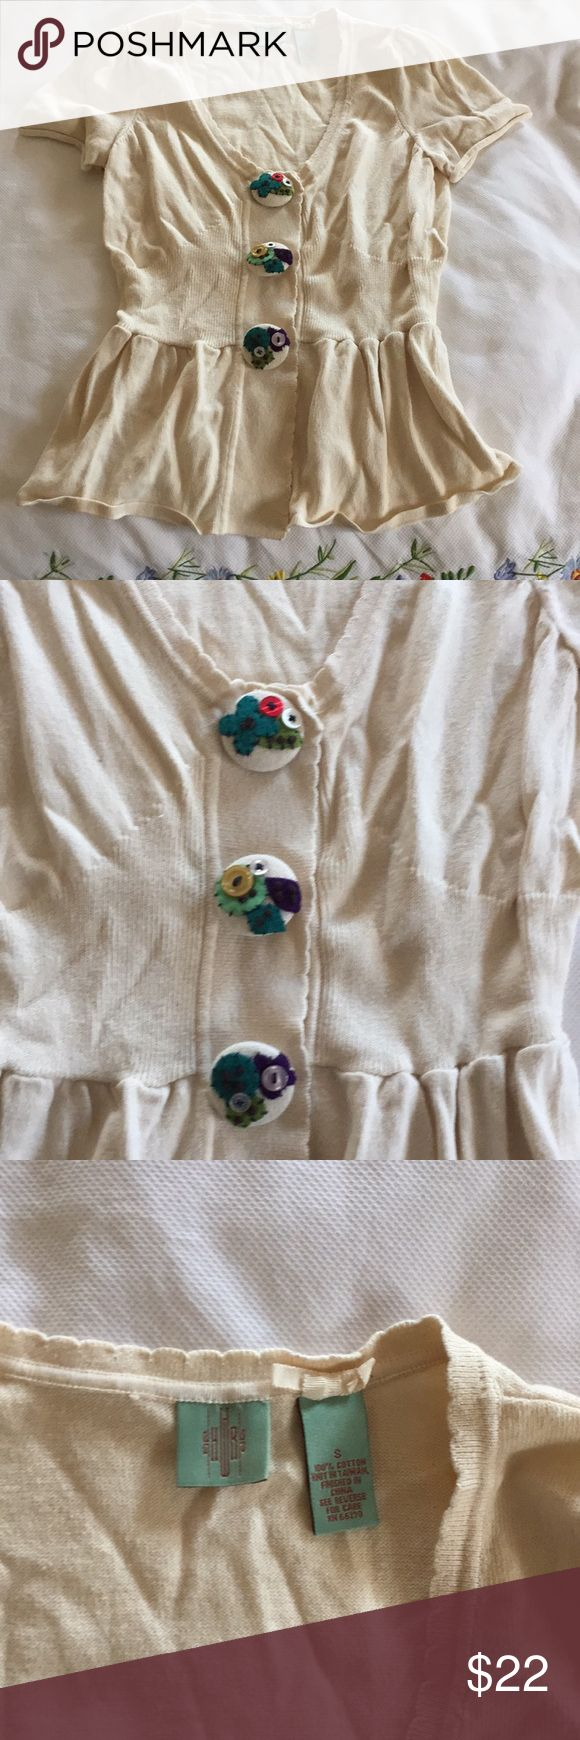 (Anthropologie) cardigan short sleeve sweater Perfect condition. Cream colored short sleeve sweater with three large embellished buttons. Fitted around the waist and flares out to a skirt look below. 100% cotton. Hand wash cold. Anthropologie Sweaters Cardigans